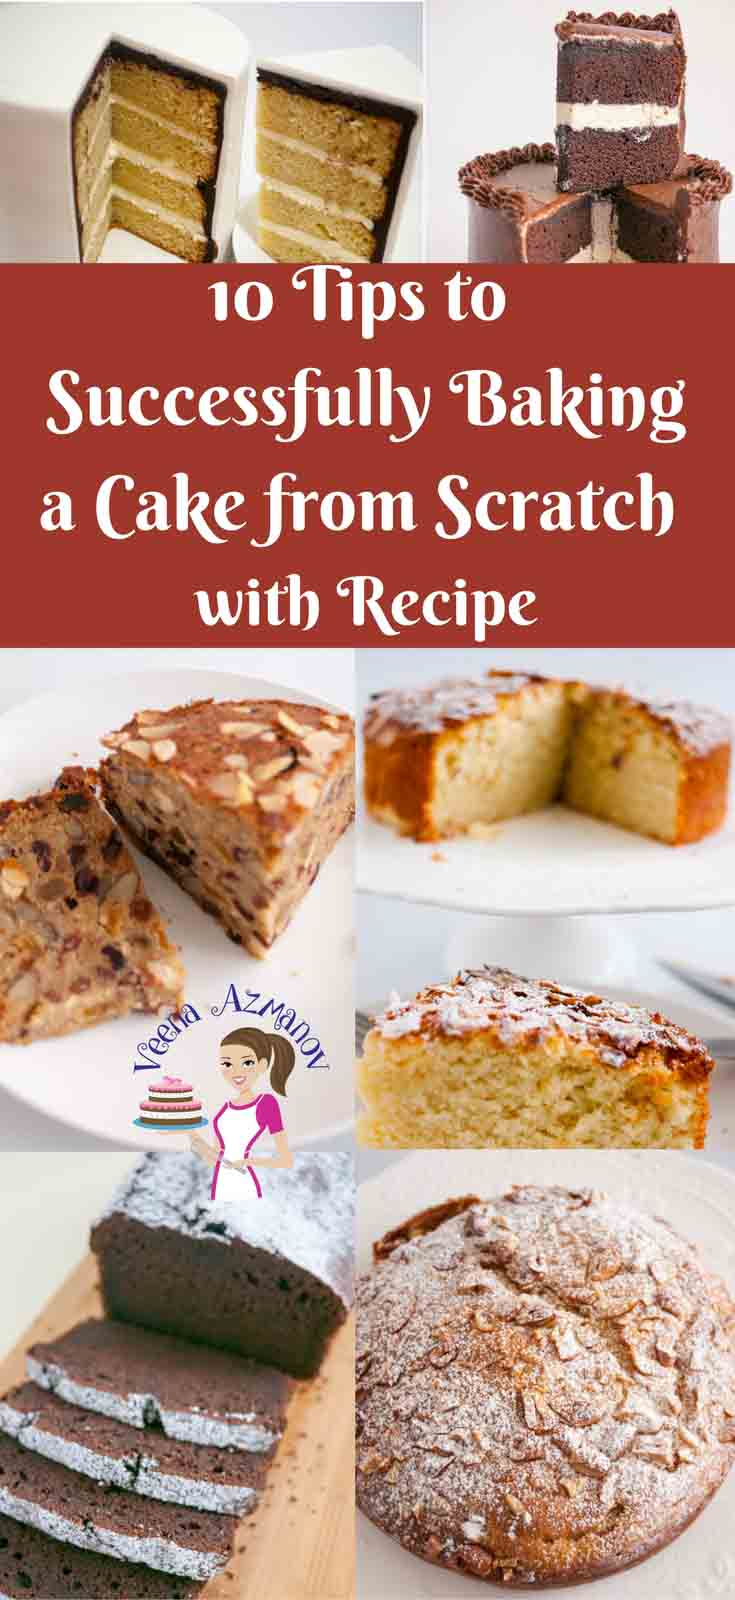 Baking in a science in which each ingredient plays an important role and has the ability to alter the end product. It requires a certain process and procedure that we must follow for best results. Here are 10 tips to successfully baking cake from scratch with recipe included that I use and follow.